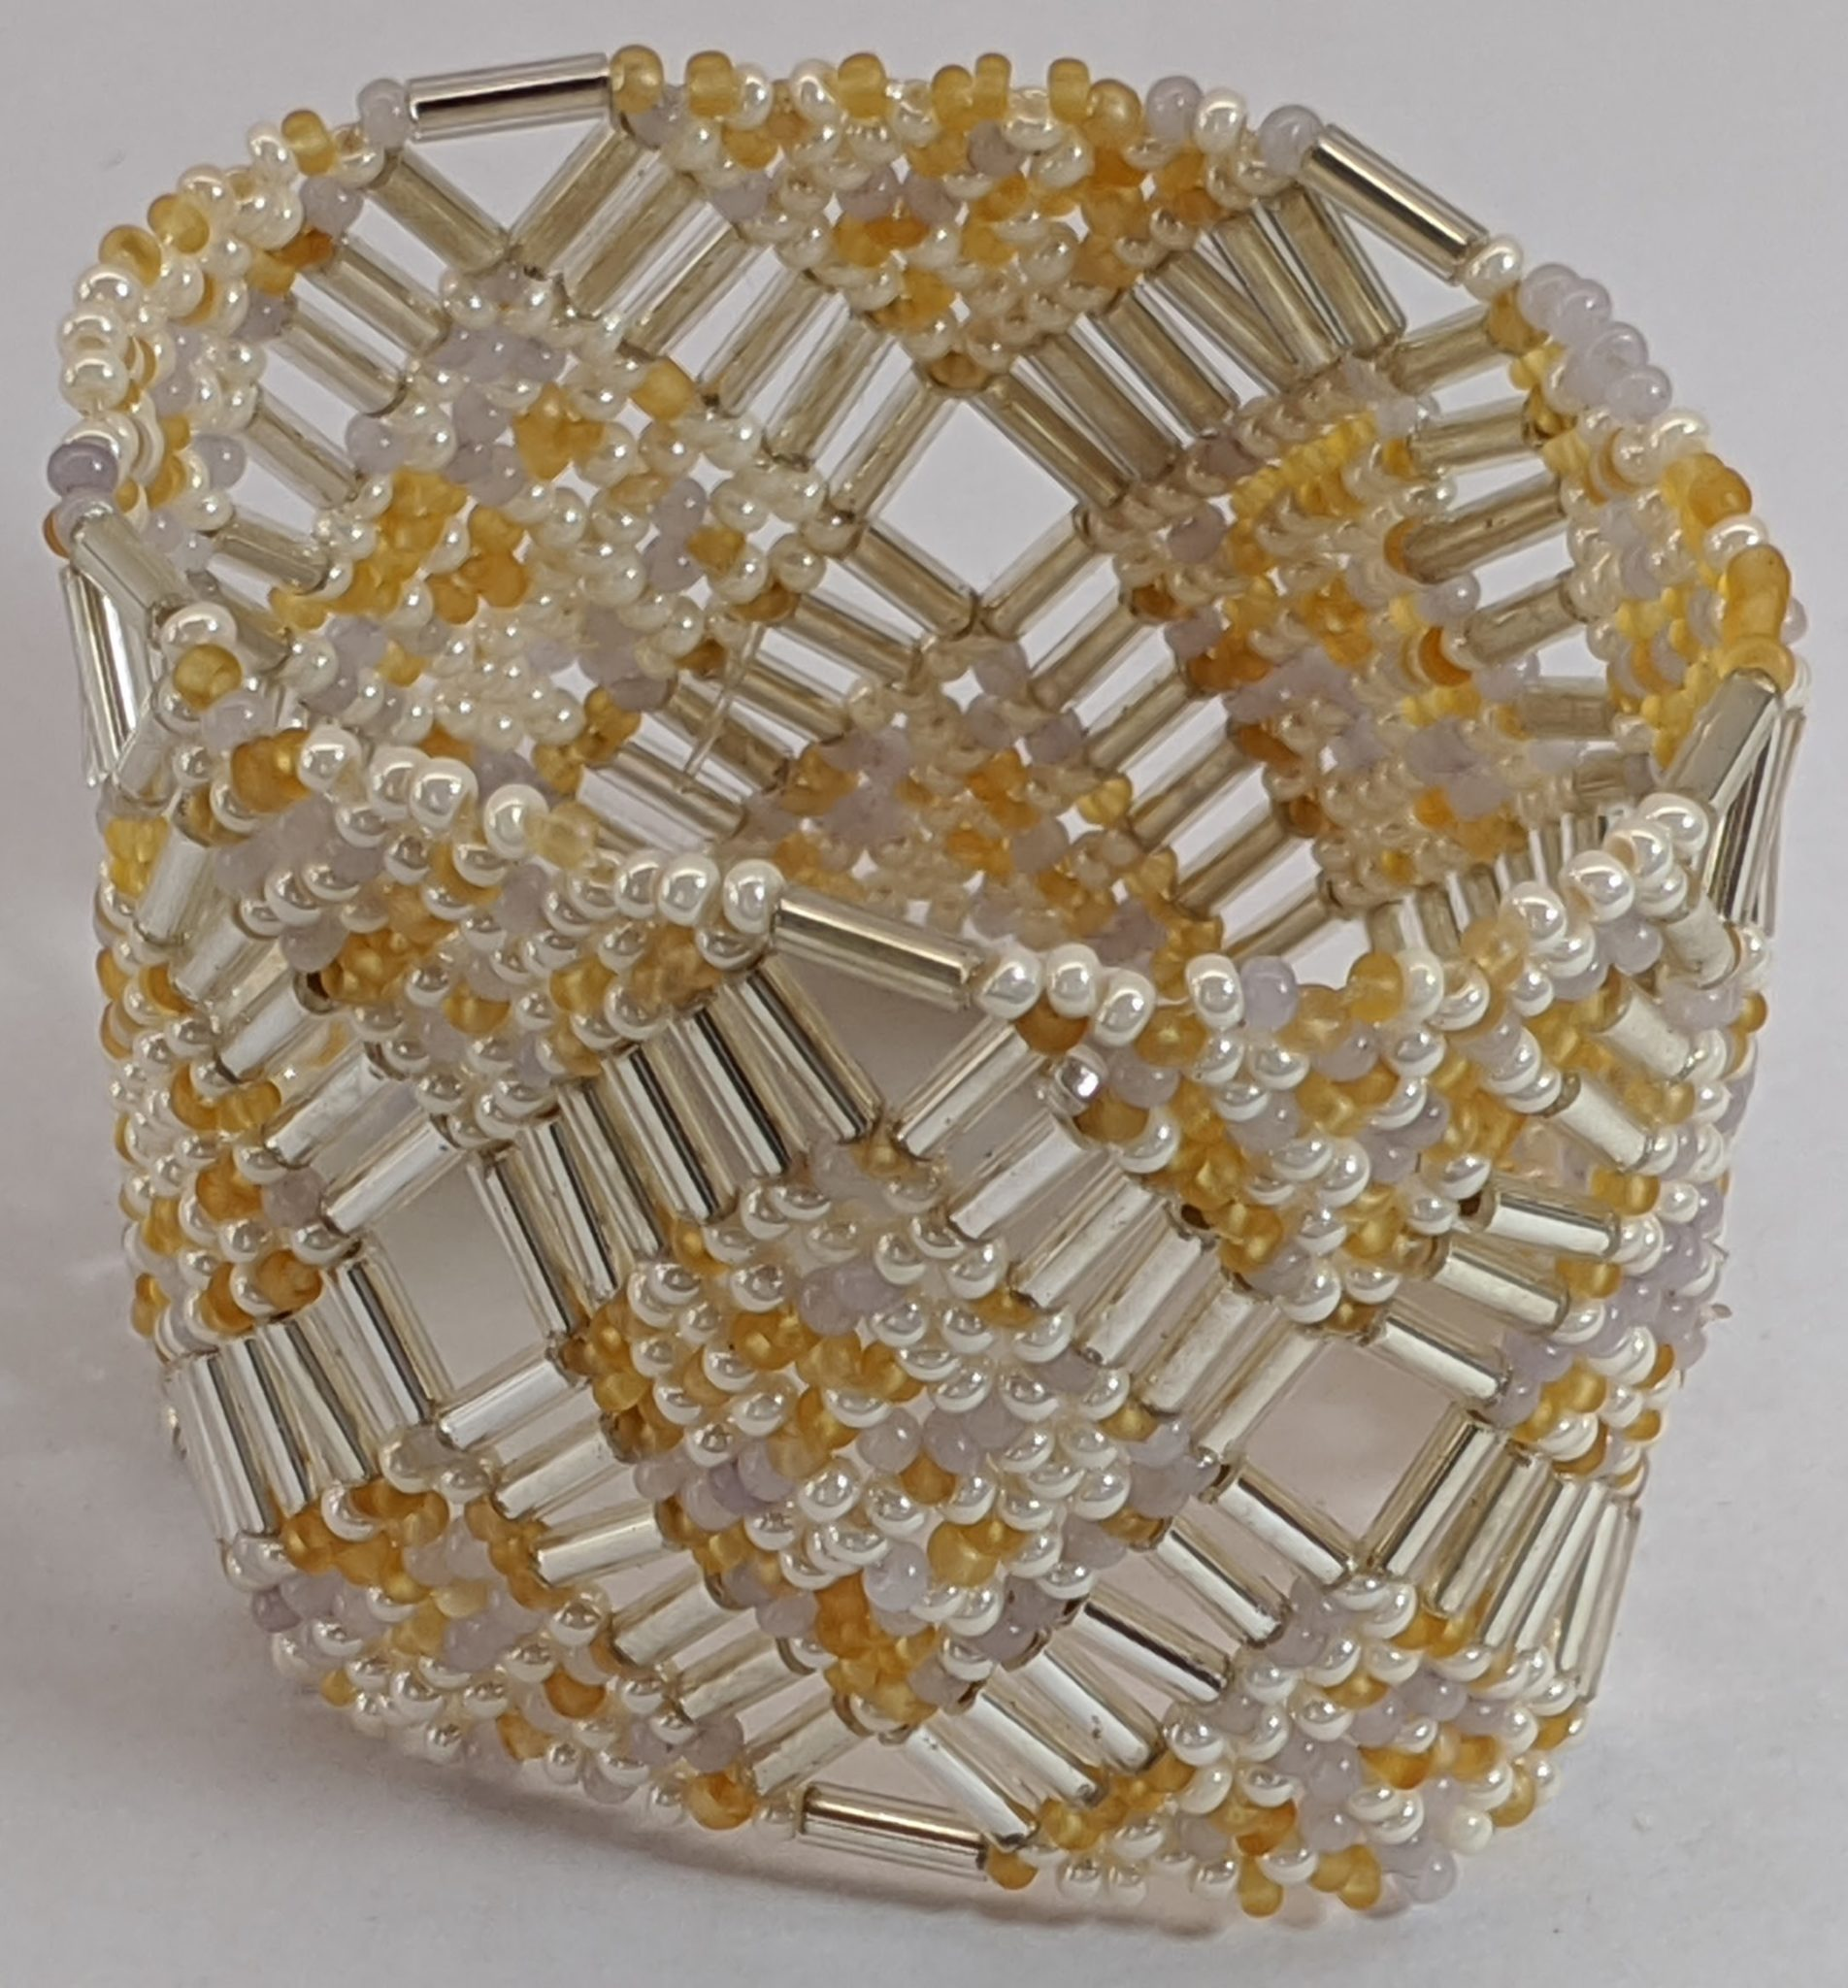 Beaded Elastic Geometric Cuff - Gold and Whites